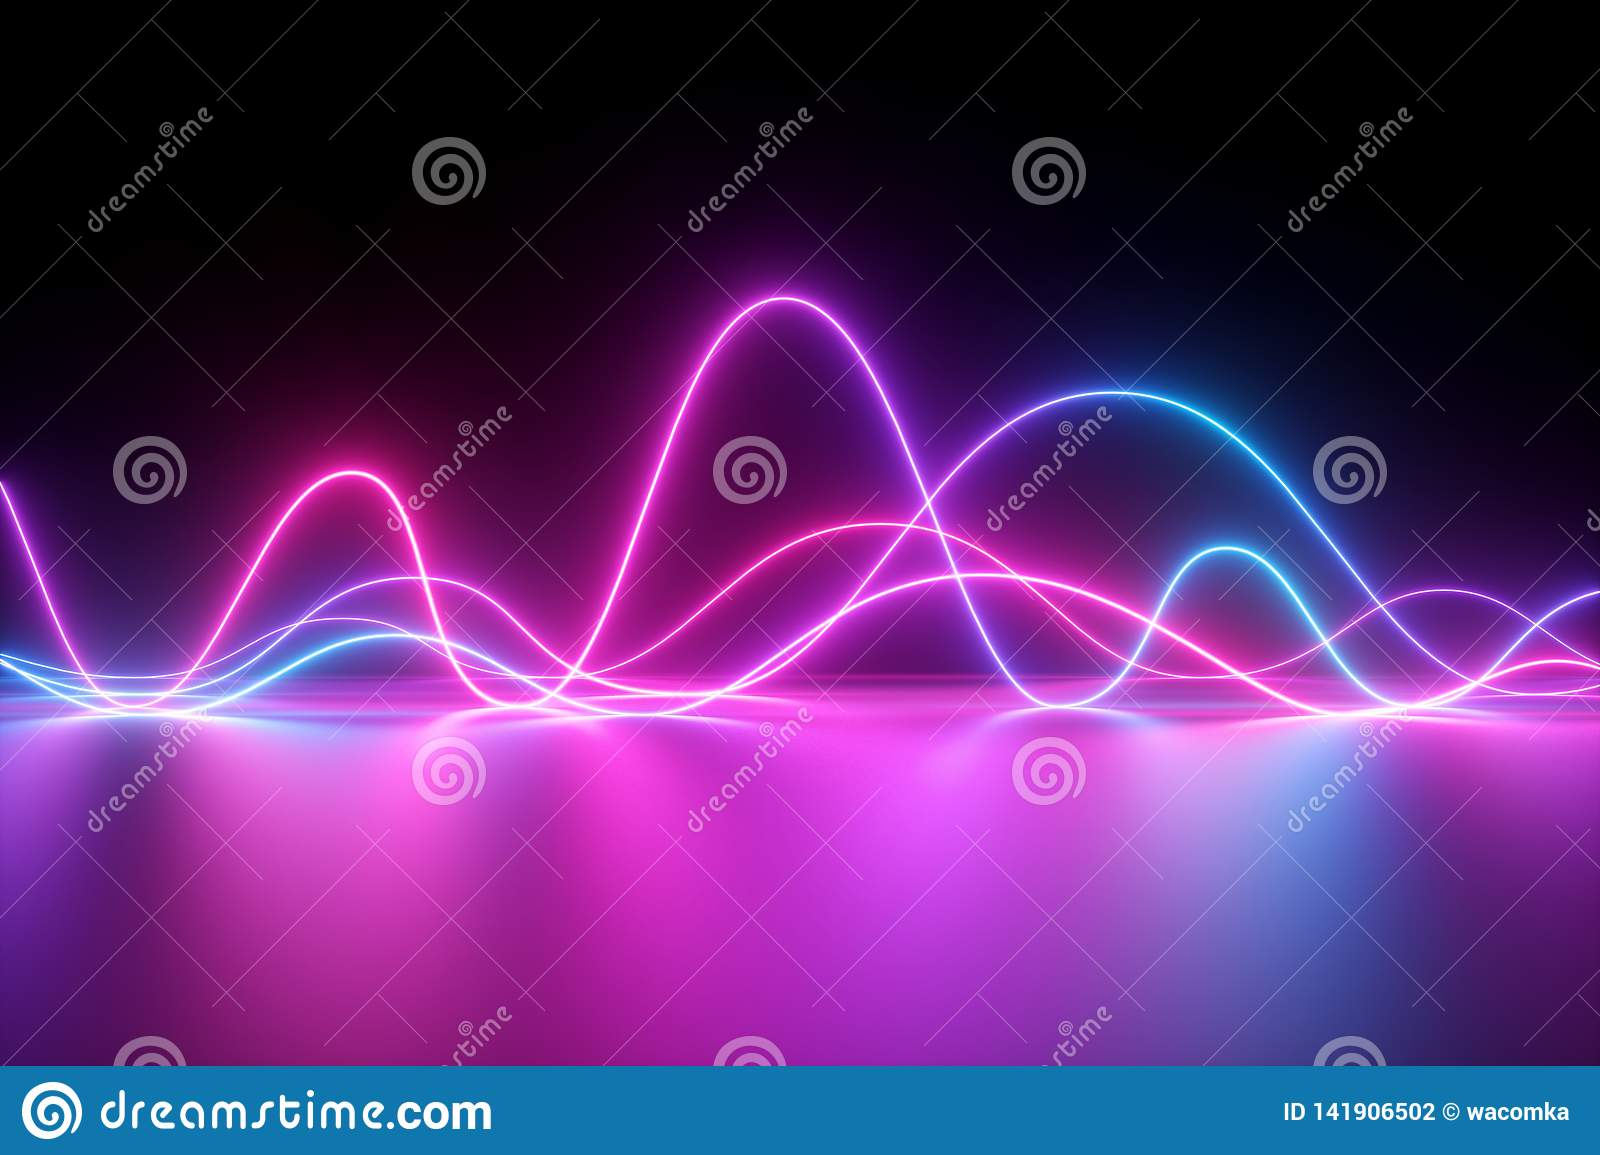 3d render, abstract background, neon light, pulse power lines, laser show, impulse, chart, ultraviolet lines, energy